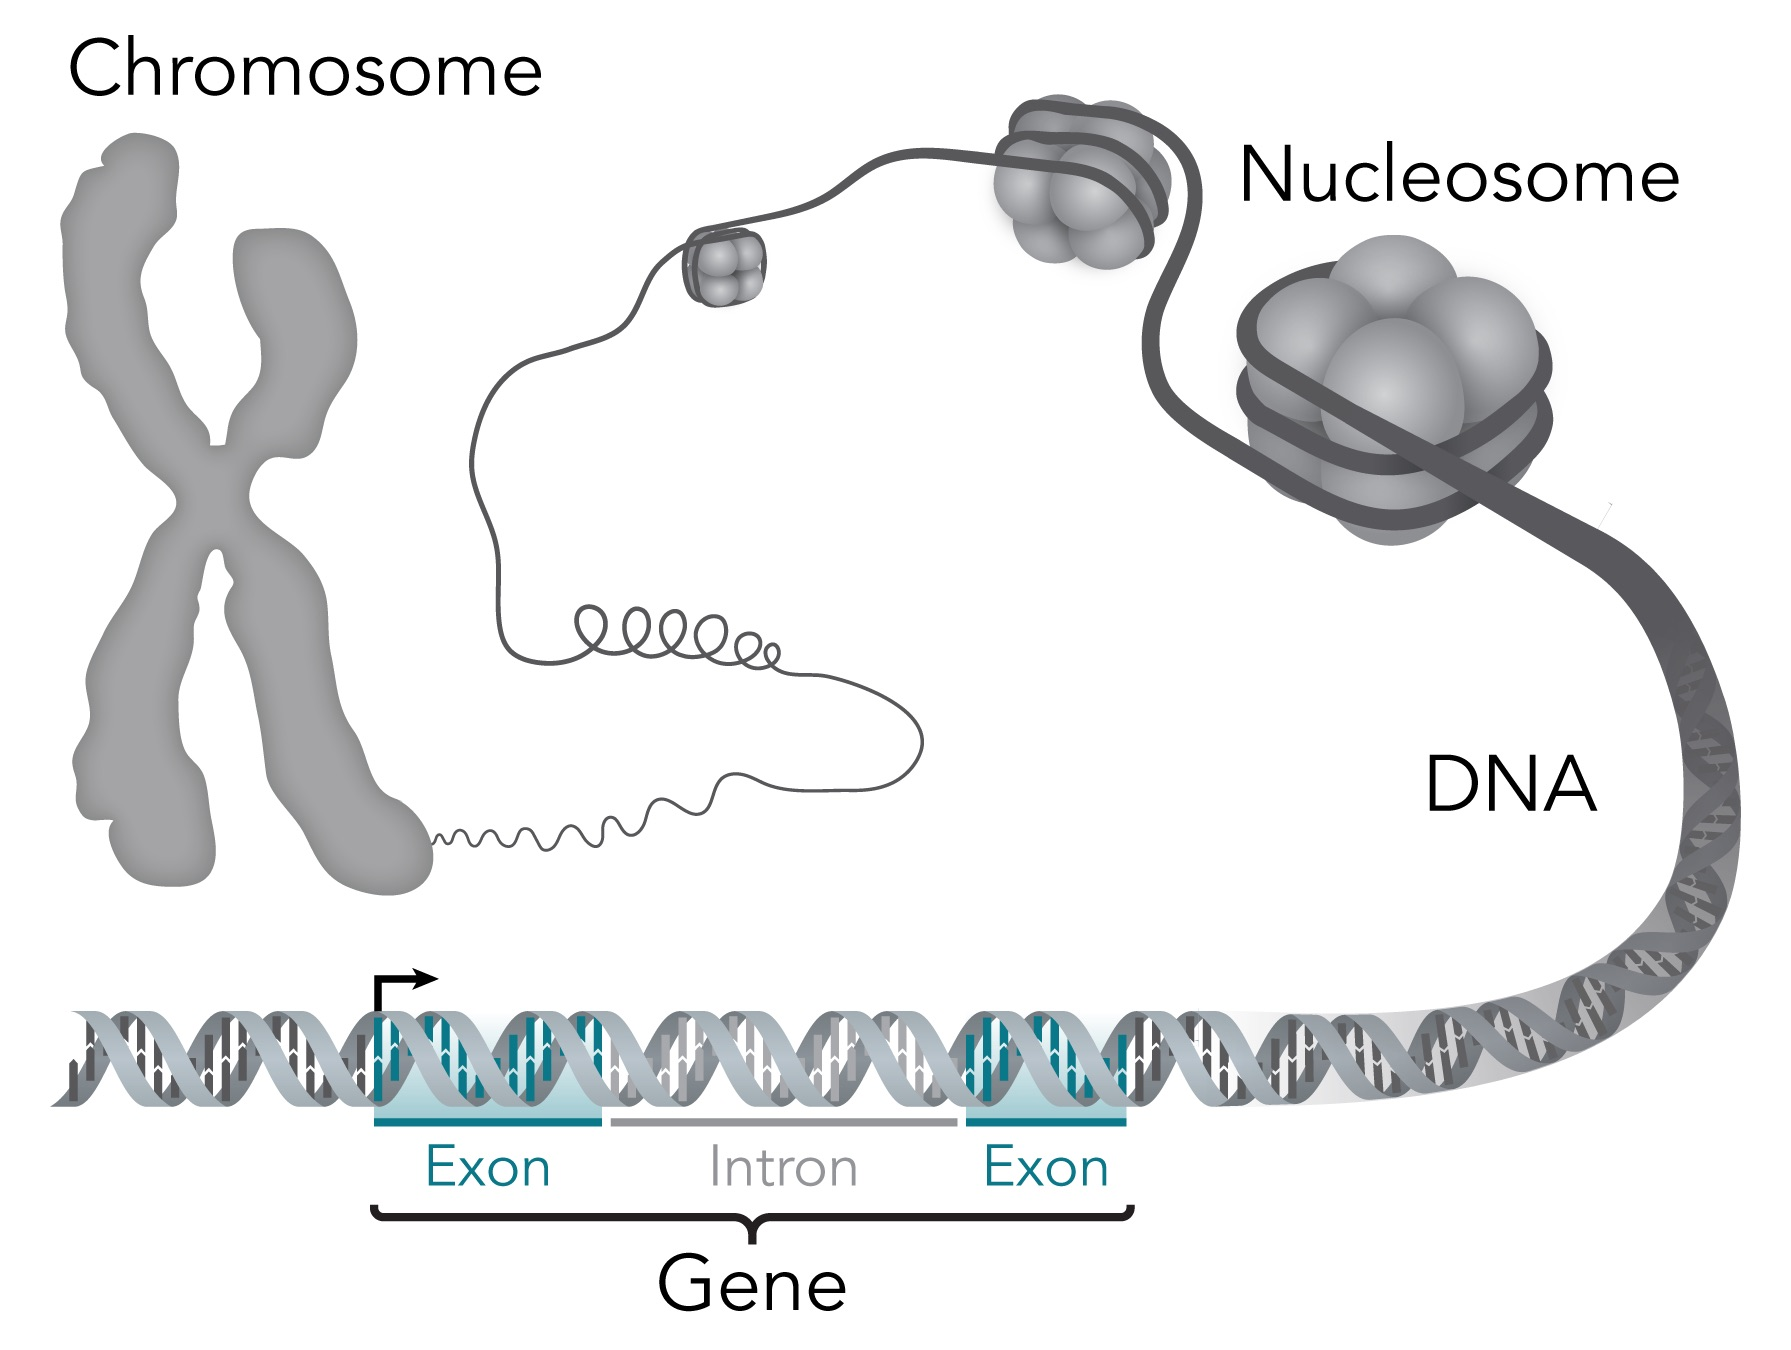 Genome BC Glossary, genomics and life sciences glossary terms